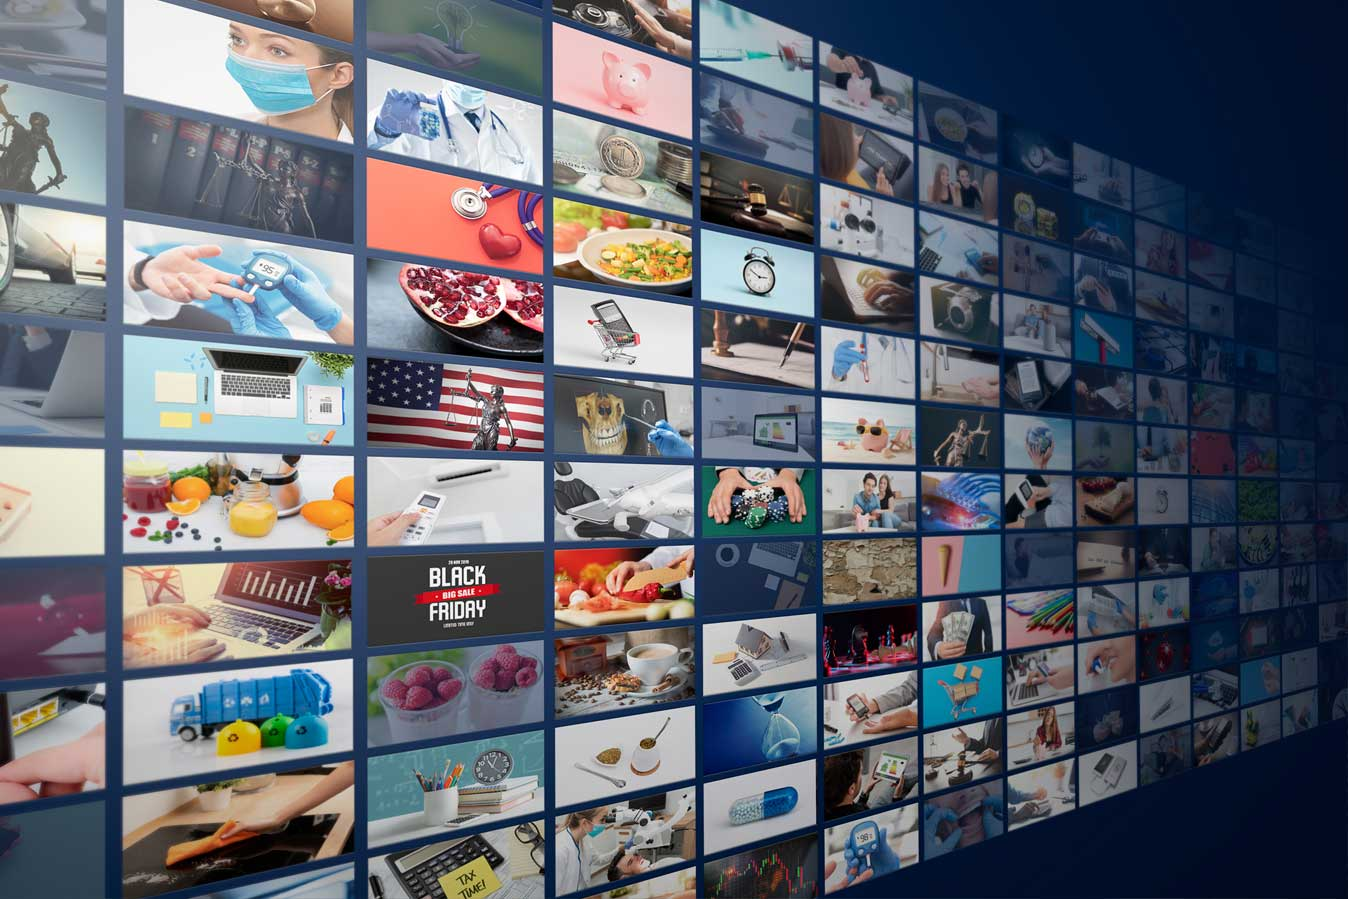 Television streaming, multimedia wall concept